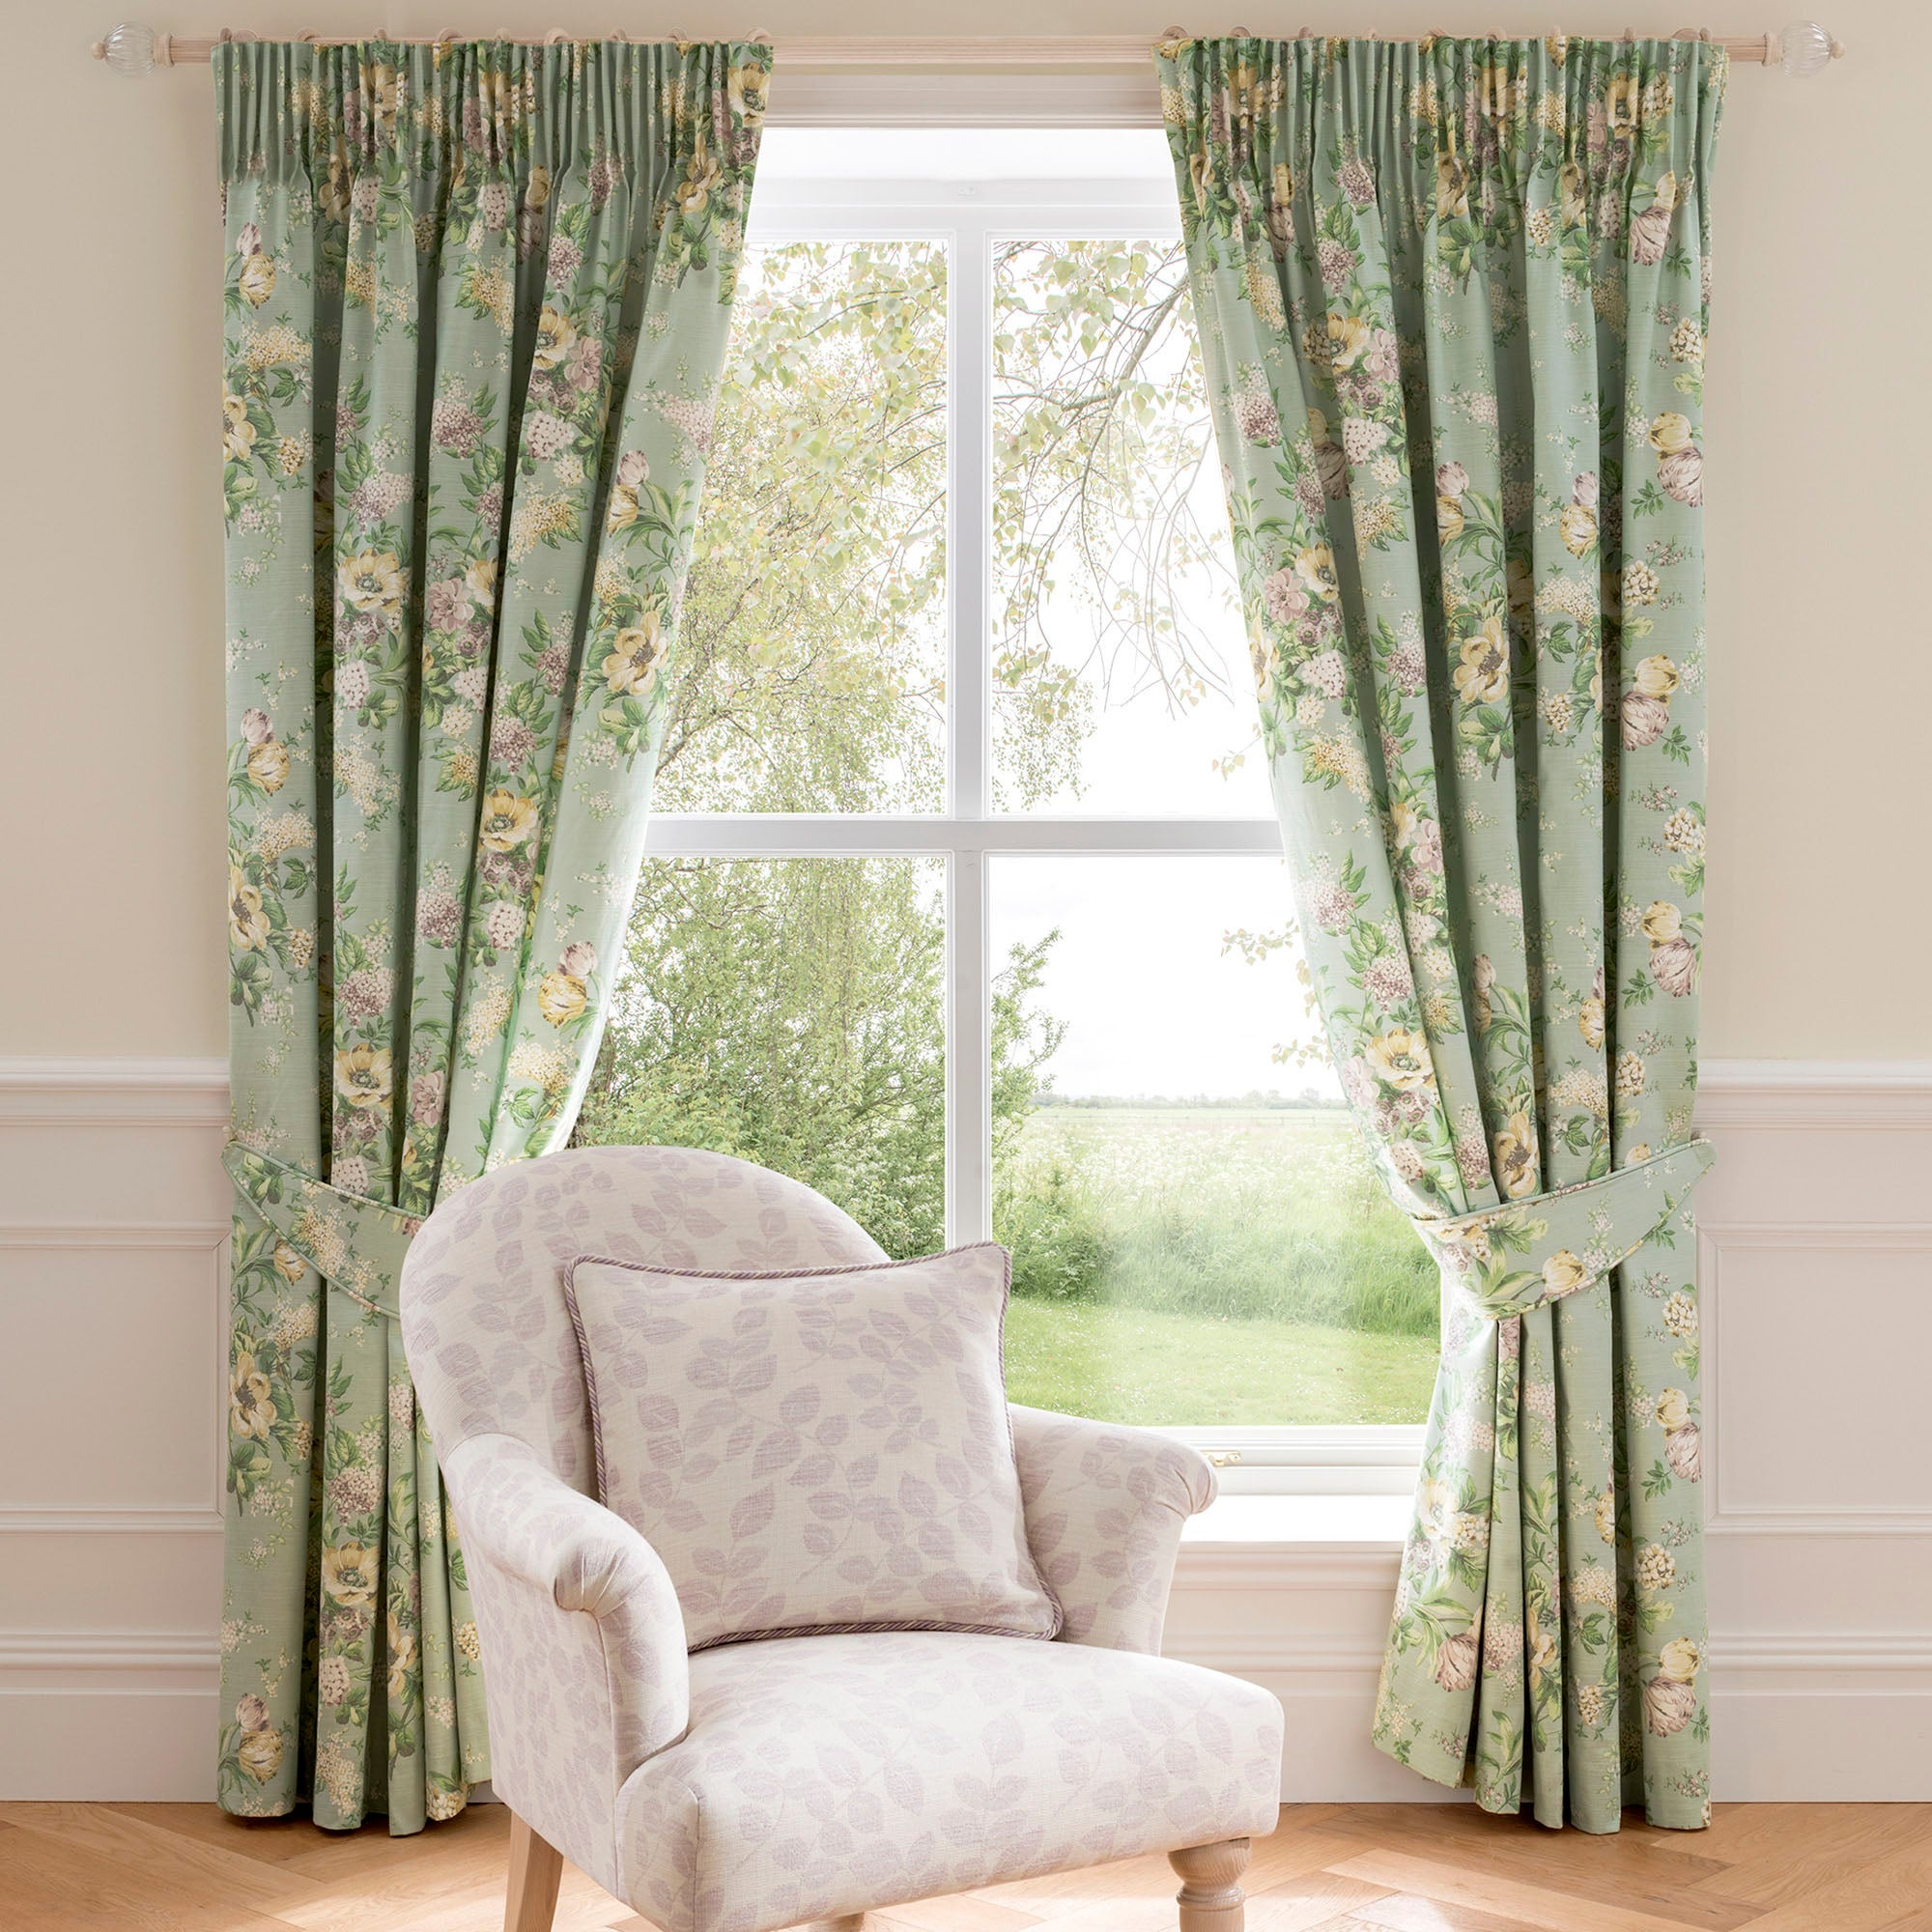 Photo of Dorma brympton duck-egg lined pencil pleat curtains duck egg green